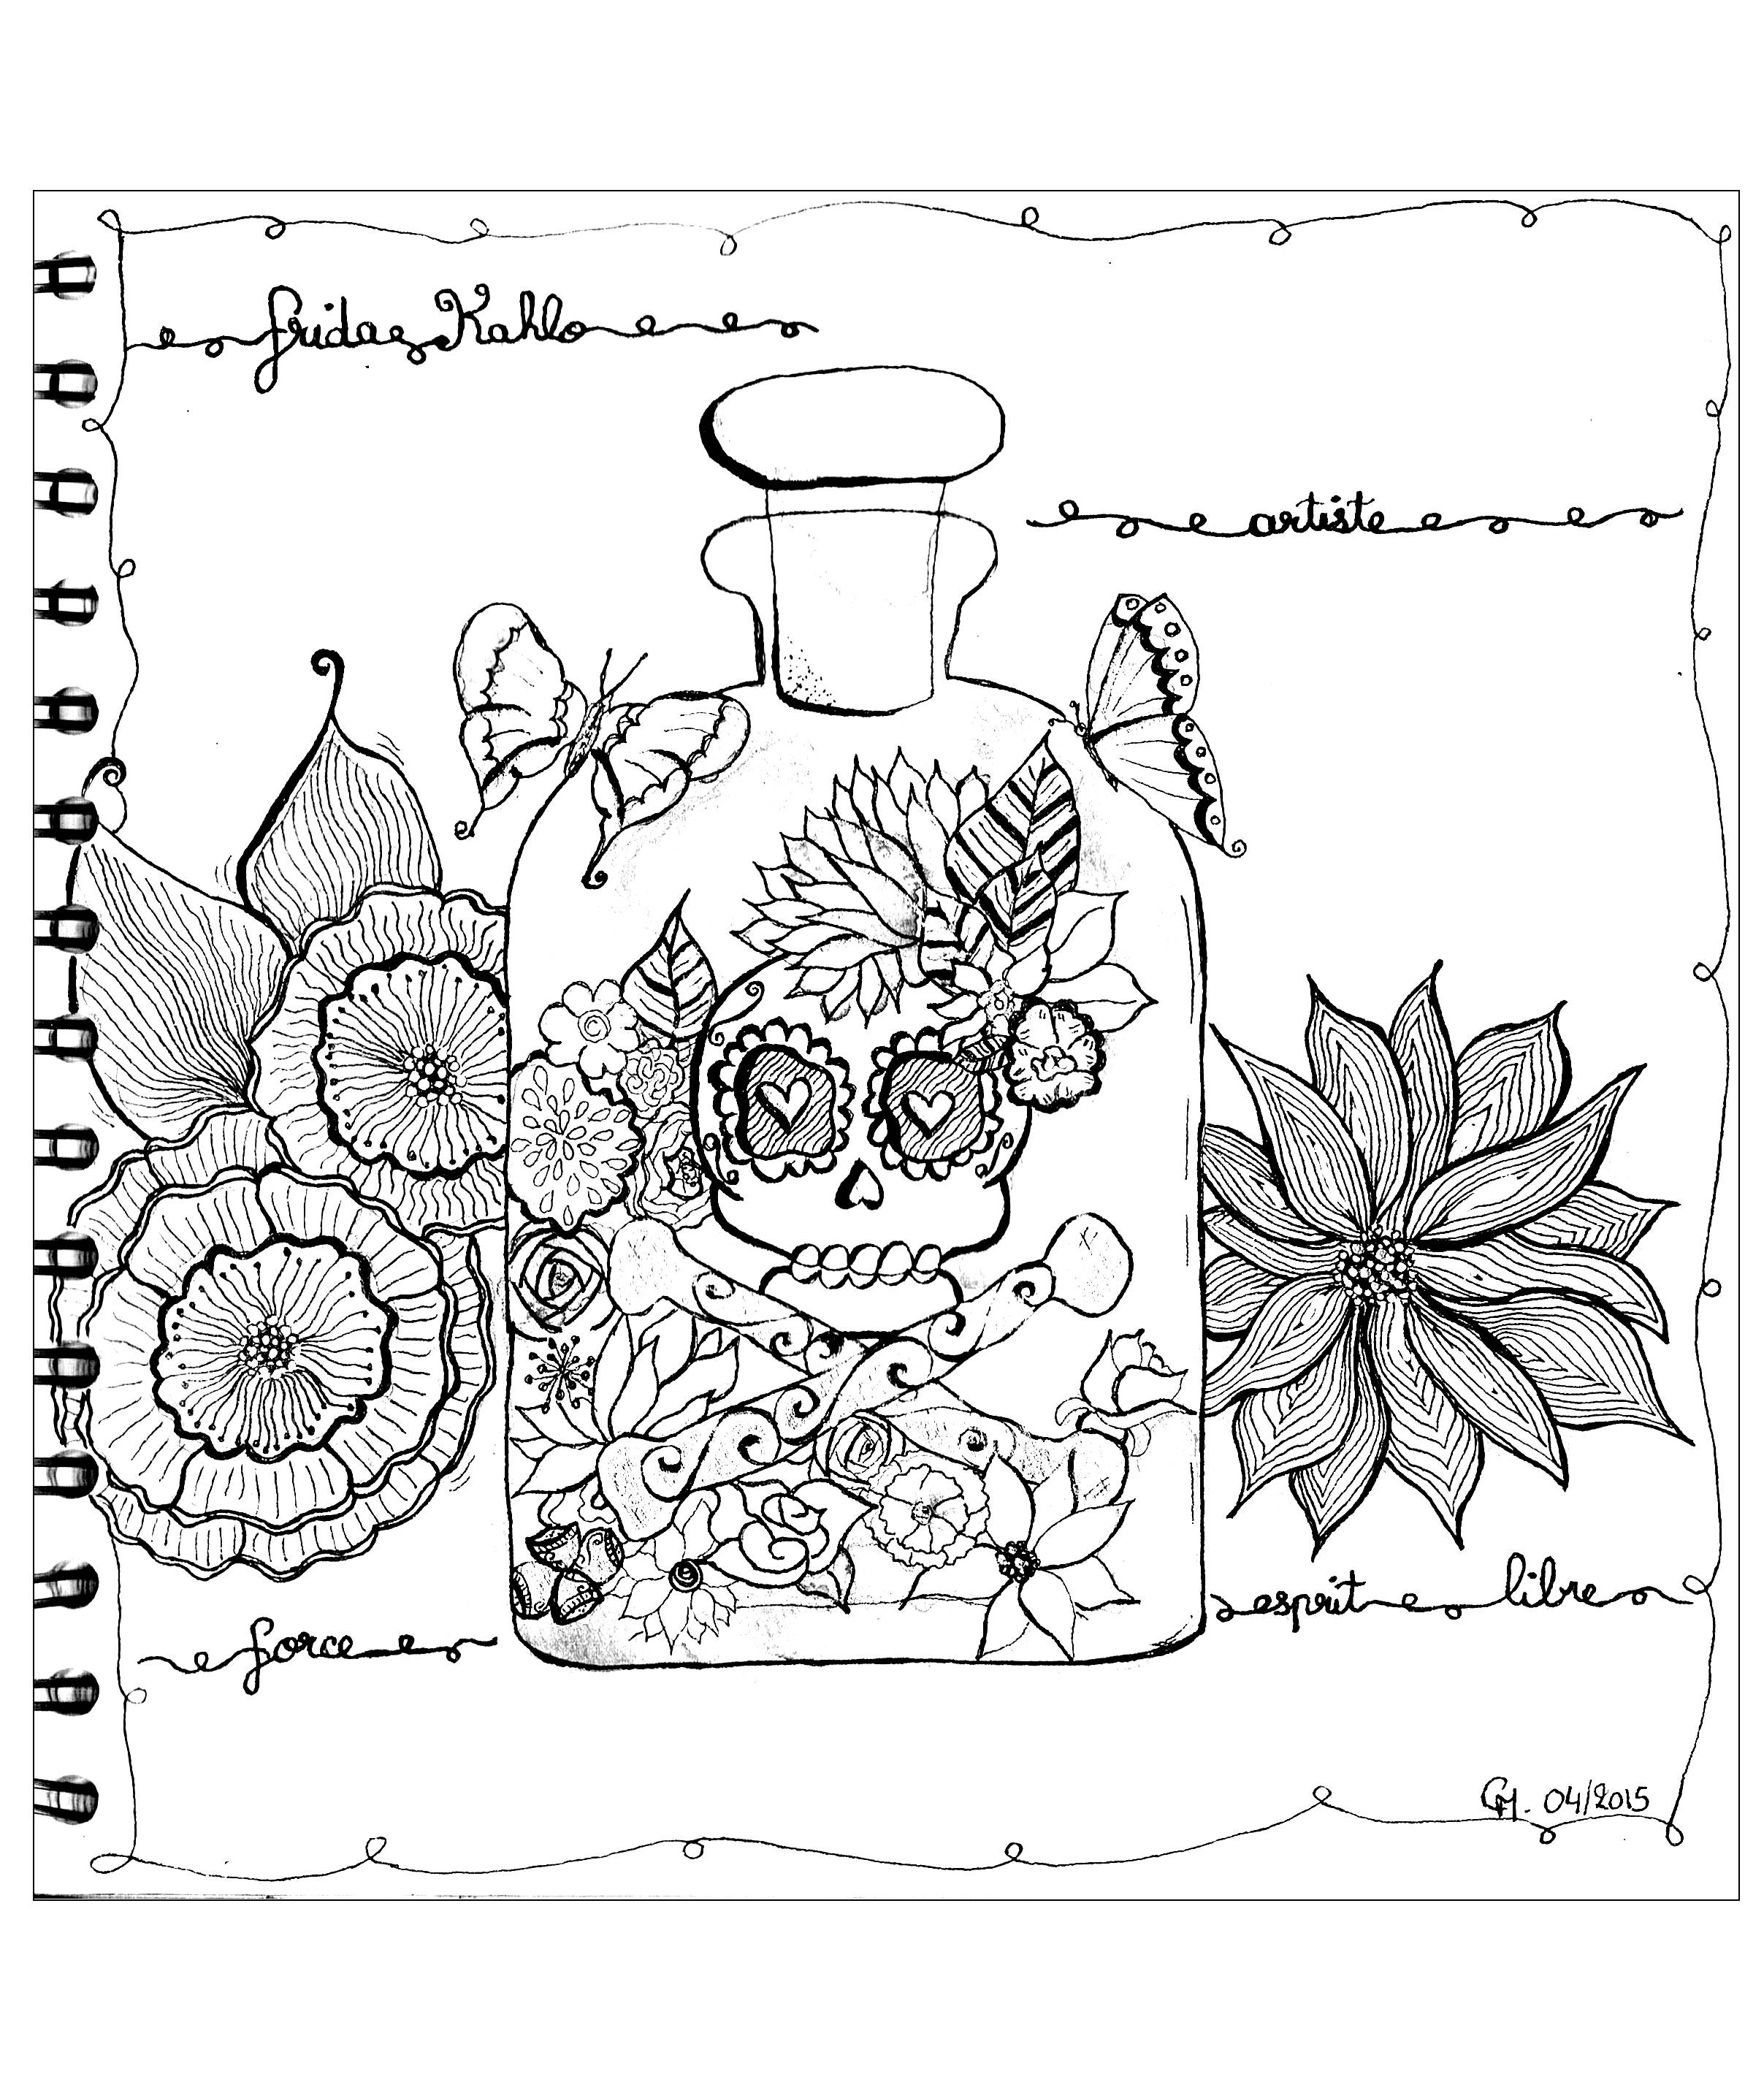 'Hommage to Frida Khalo', exclusive coloring page See the original work